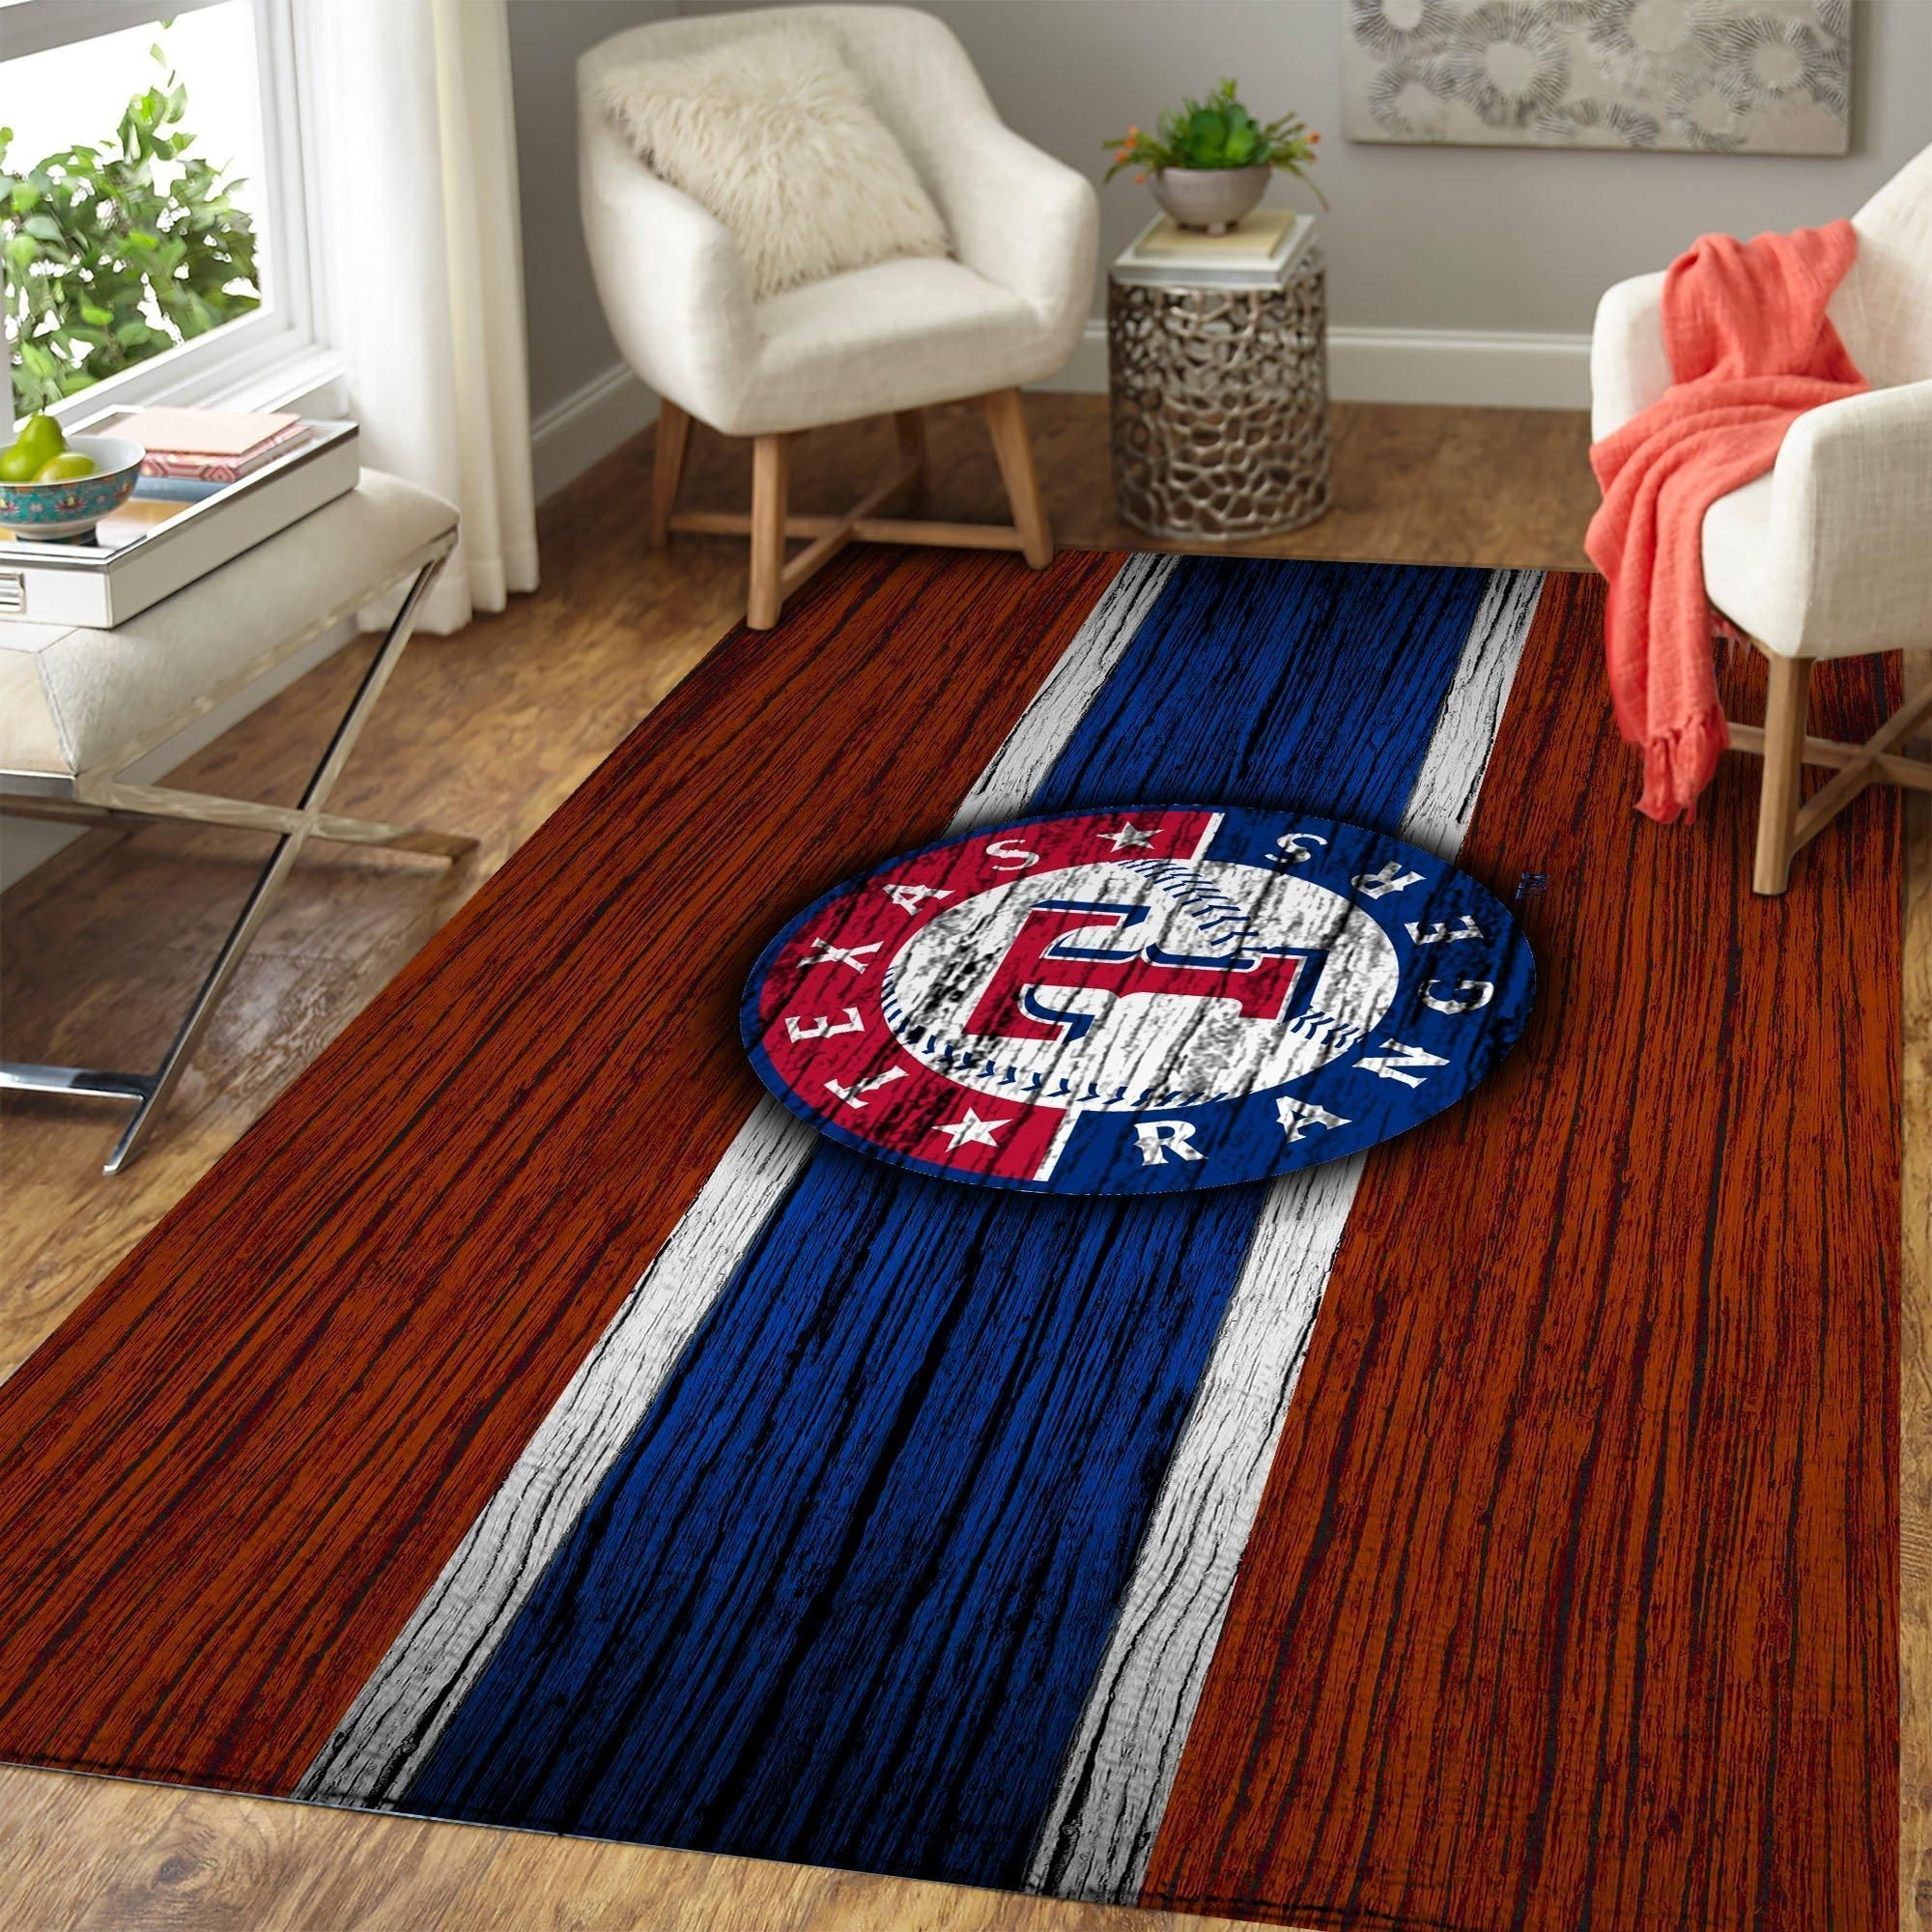 Texas Rangers Area Rugs MLB Baseball Team Living Room Carpet Sport Custom Area Floor Home Decor